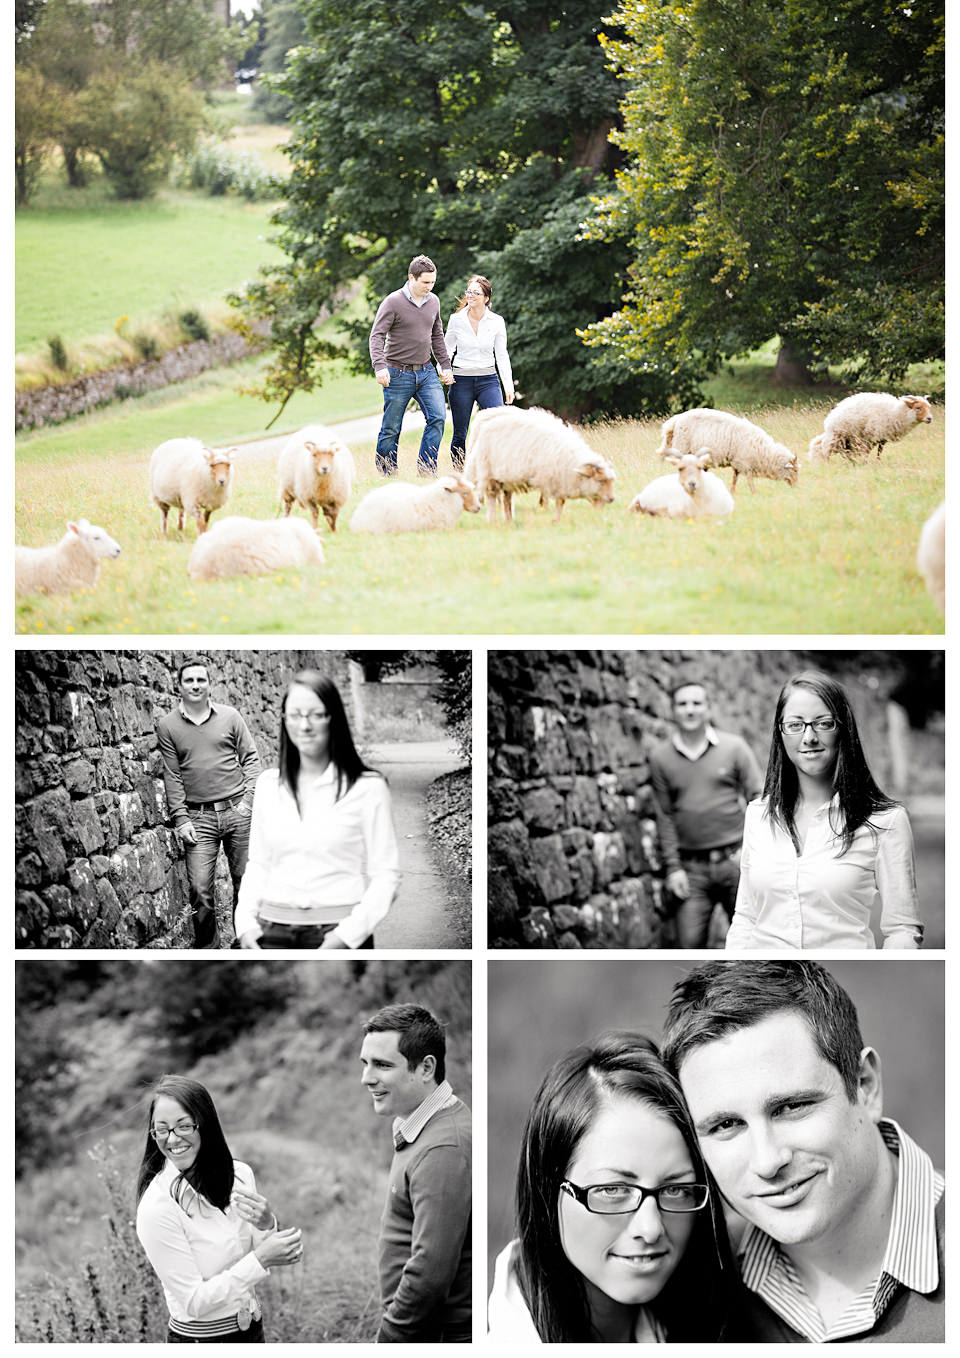 Louise & Richard's engagement photos at Calke Abbey, Derbyshire, by HBA Photography - Relaxed and contemporary wedding photographers